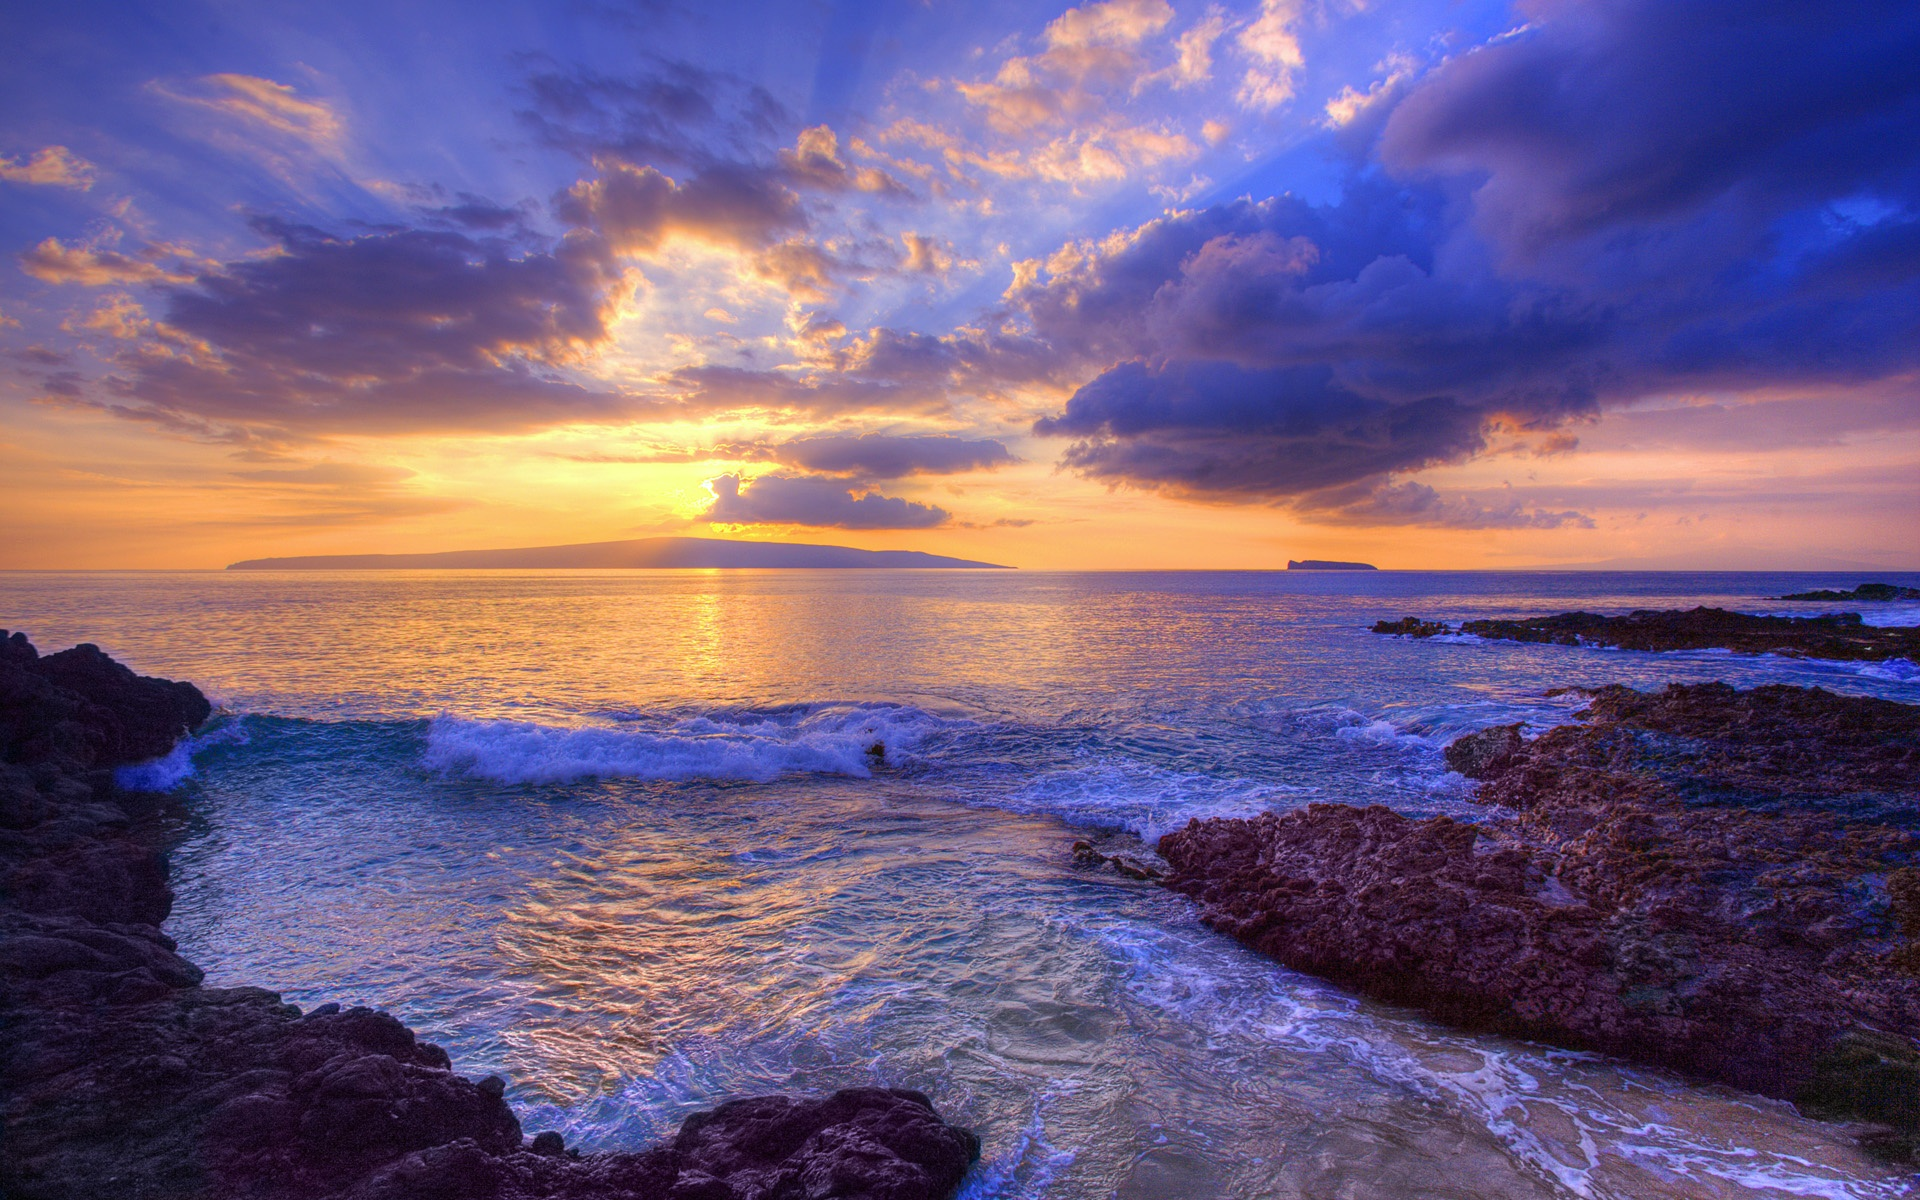 wallpaper sunset at secret beach, maui, hawaii, usa 1920x1200 hd